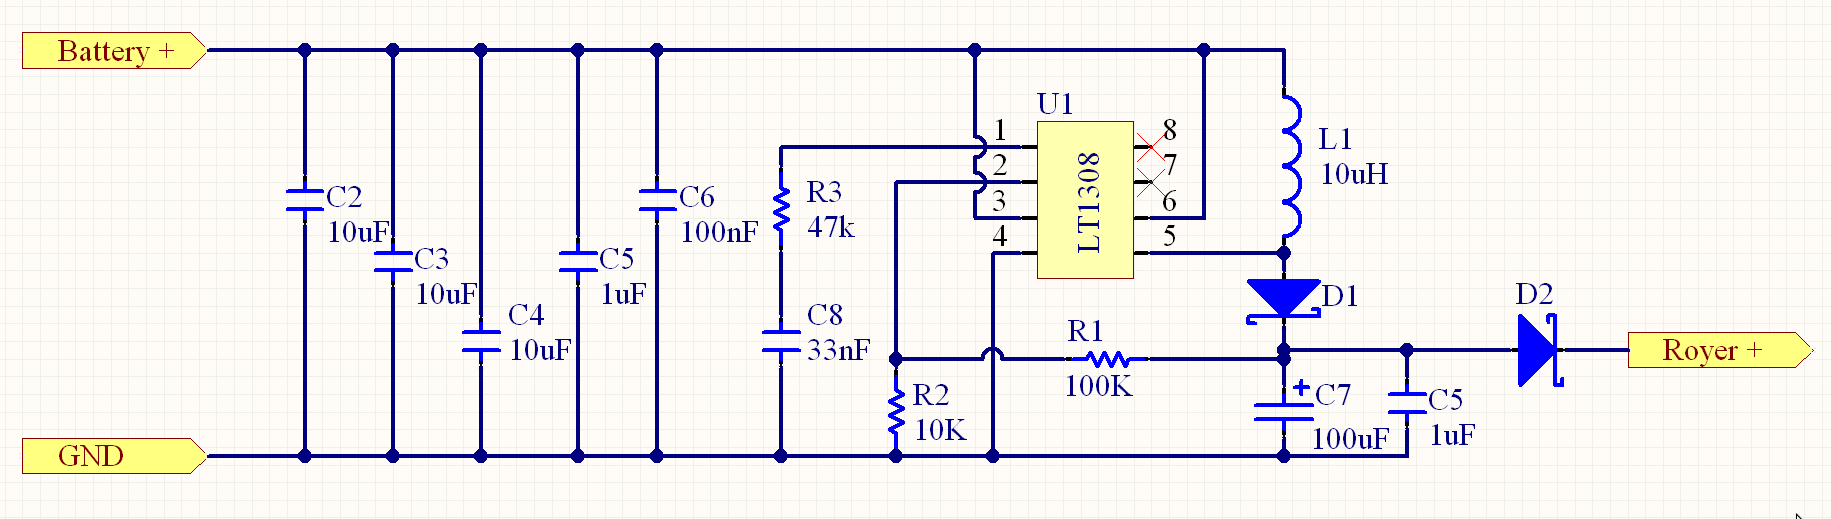 Stun Gun Circuit Diagram on dc to ac wiring diagram